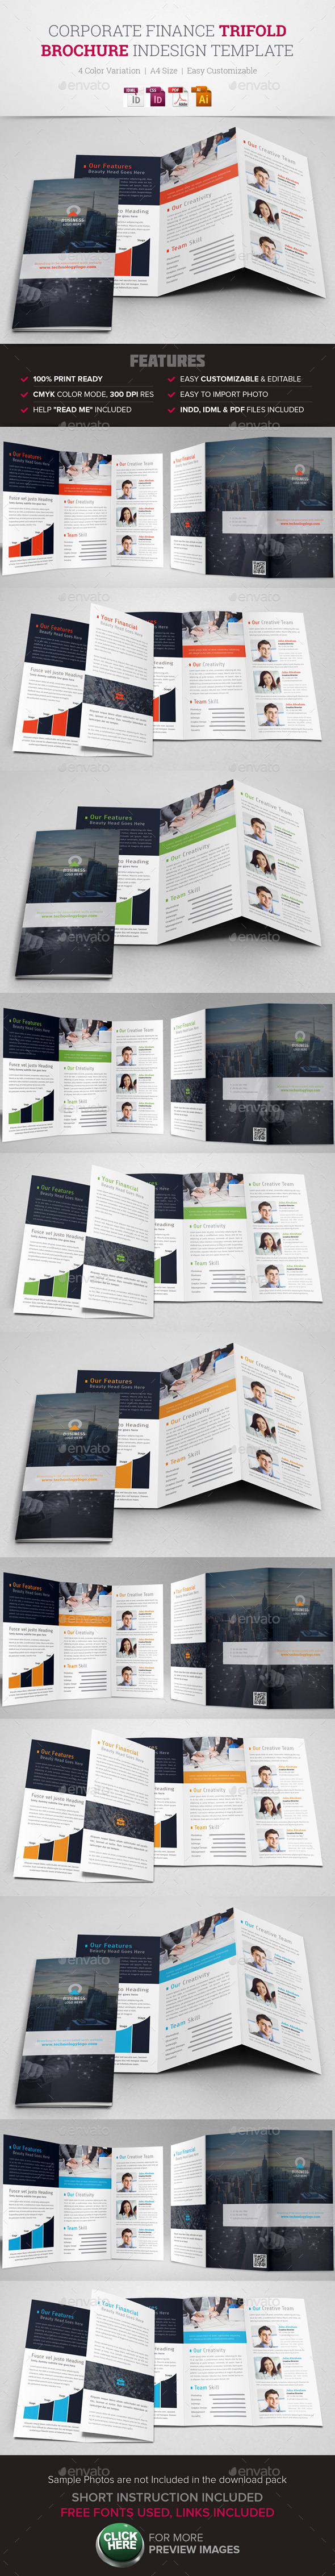 GraphicRiver Corporate Finance Trifold Brochure InDesign 10498649